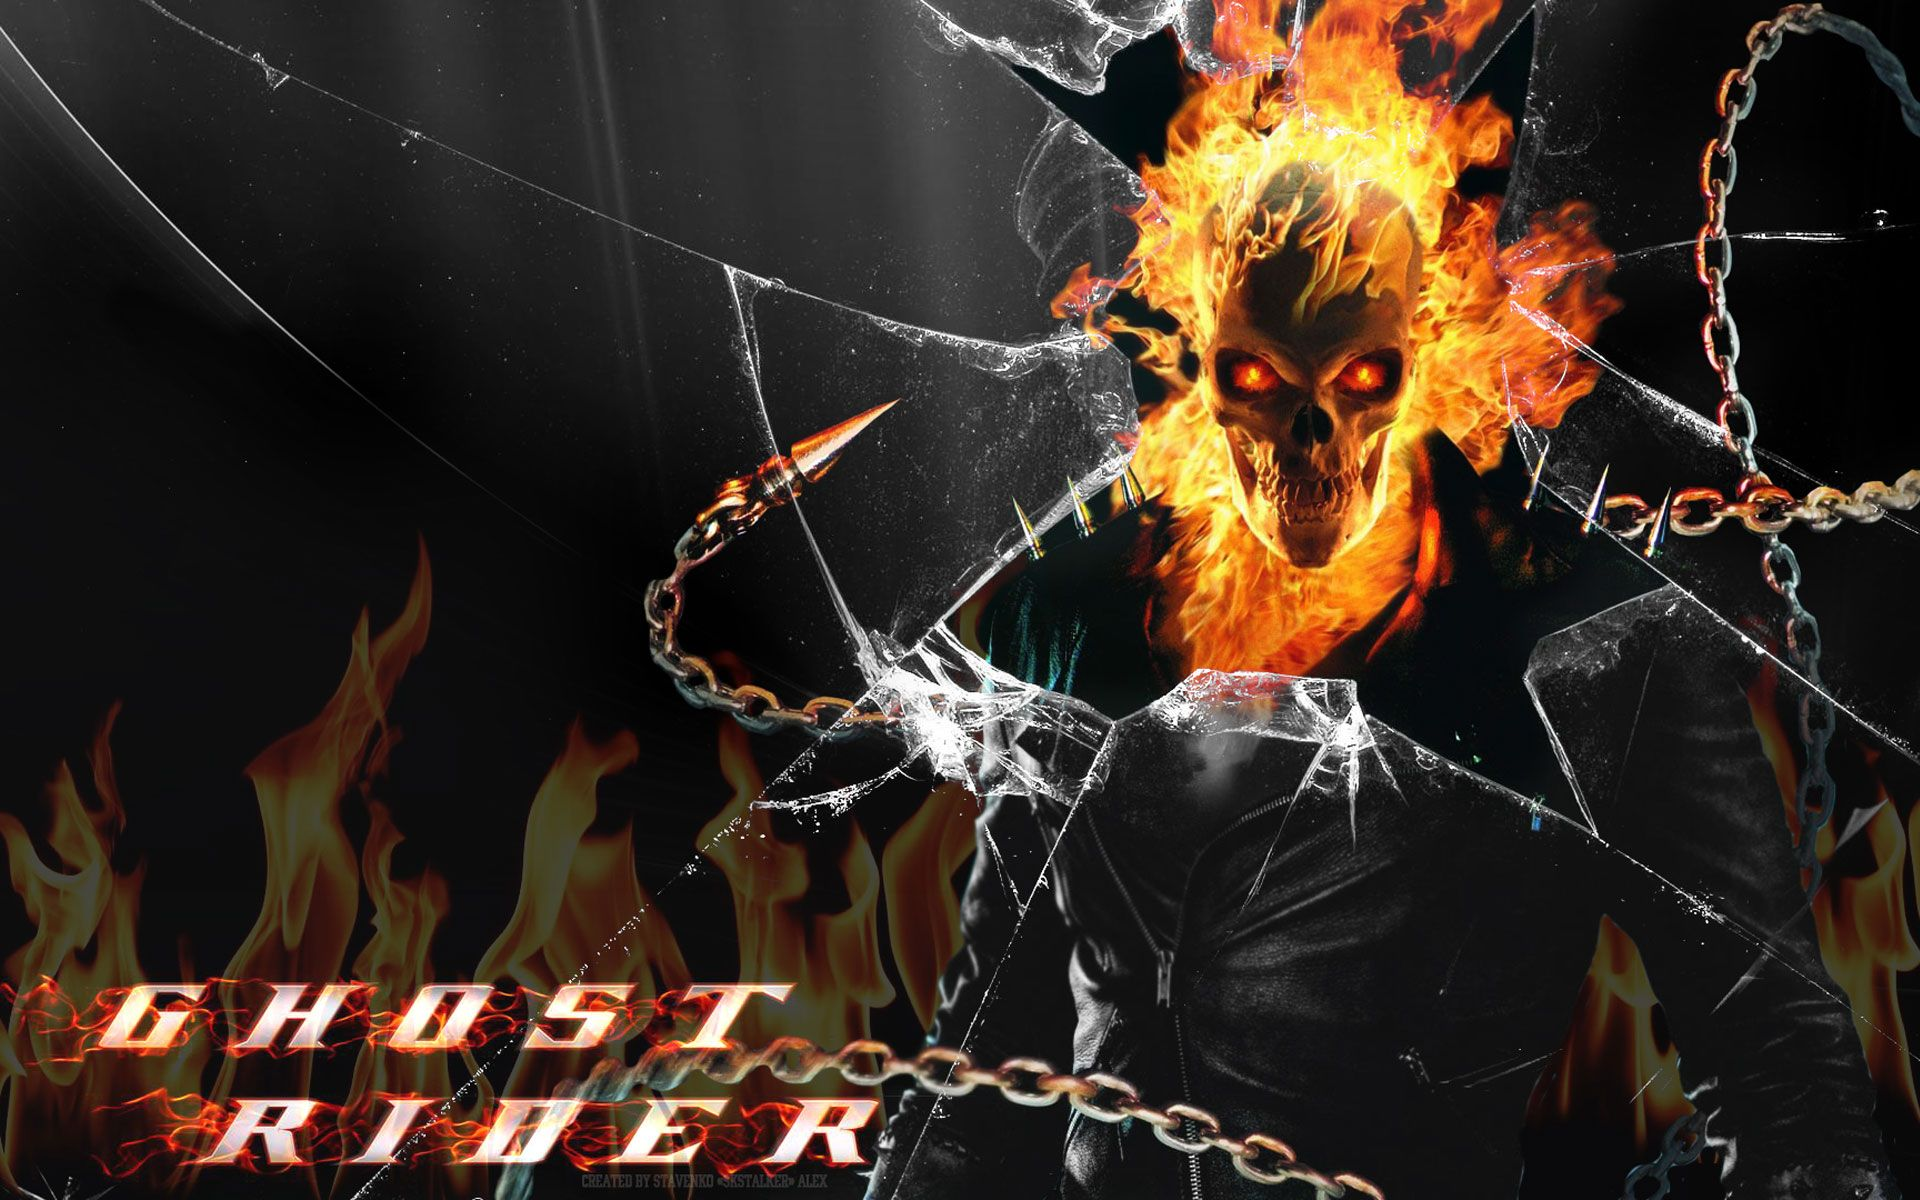 Ghost Rider Spirit Of Vengeance HD Wallpapers Backgrounds 800x600 2 44